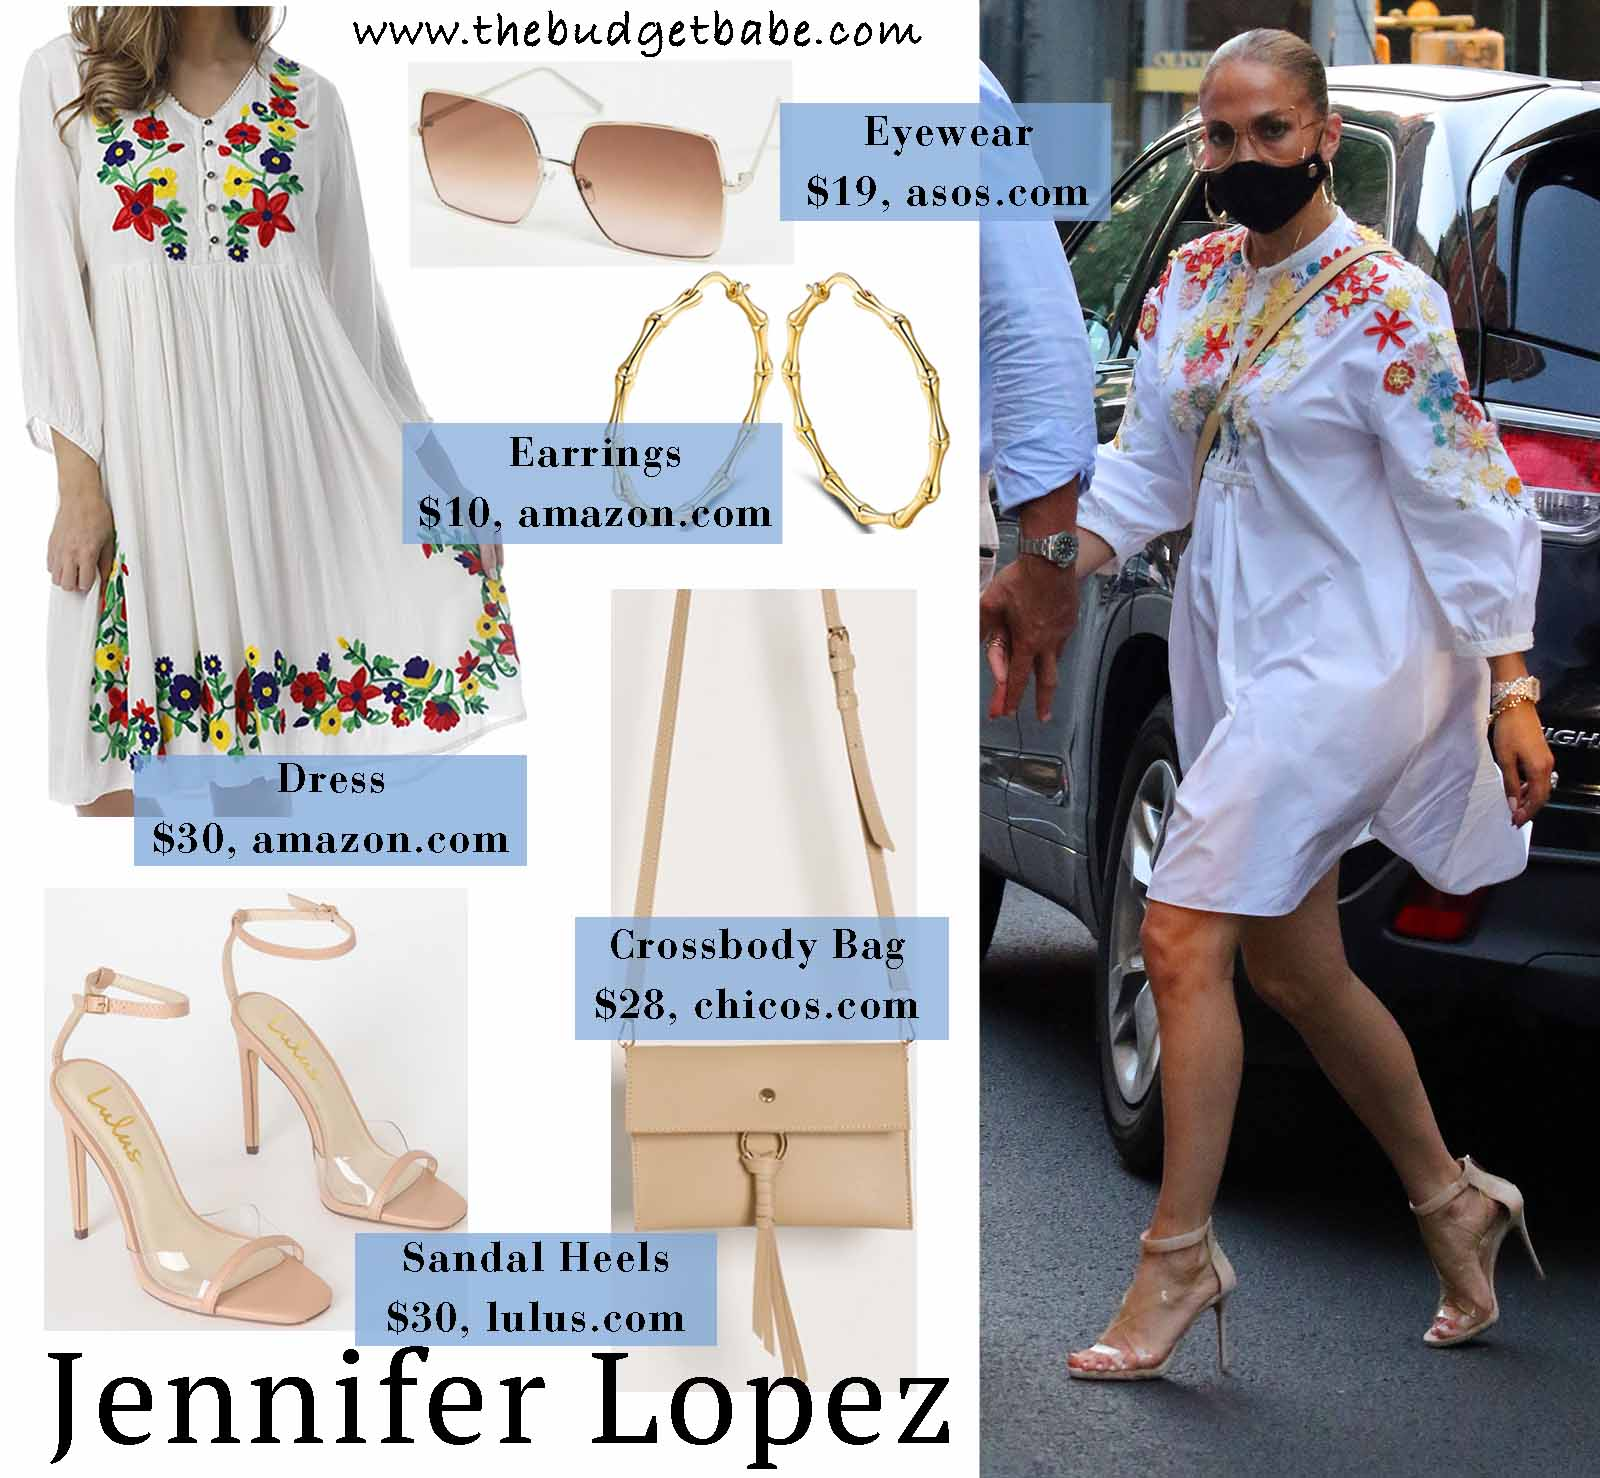 Jlo styles a Valentino dress perfectly!